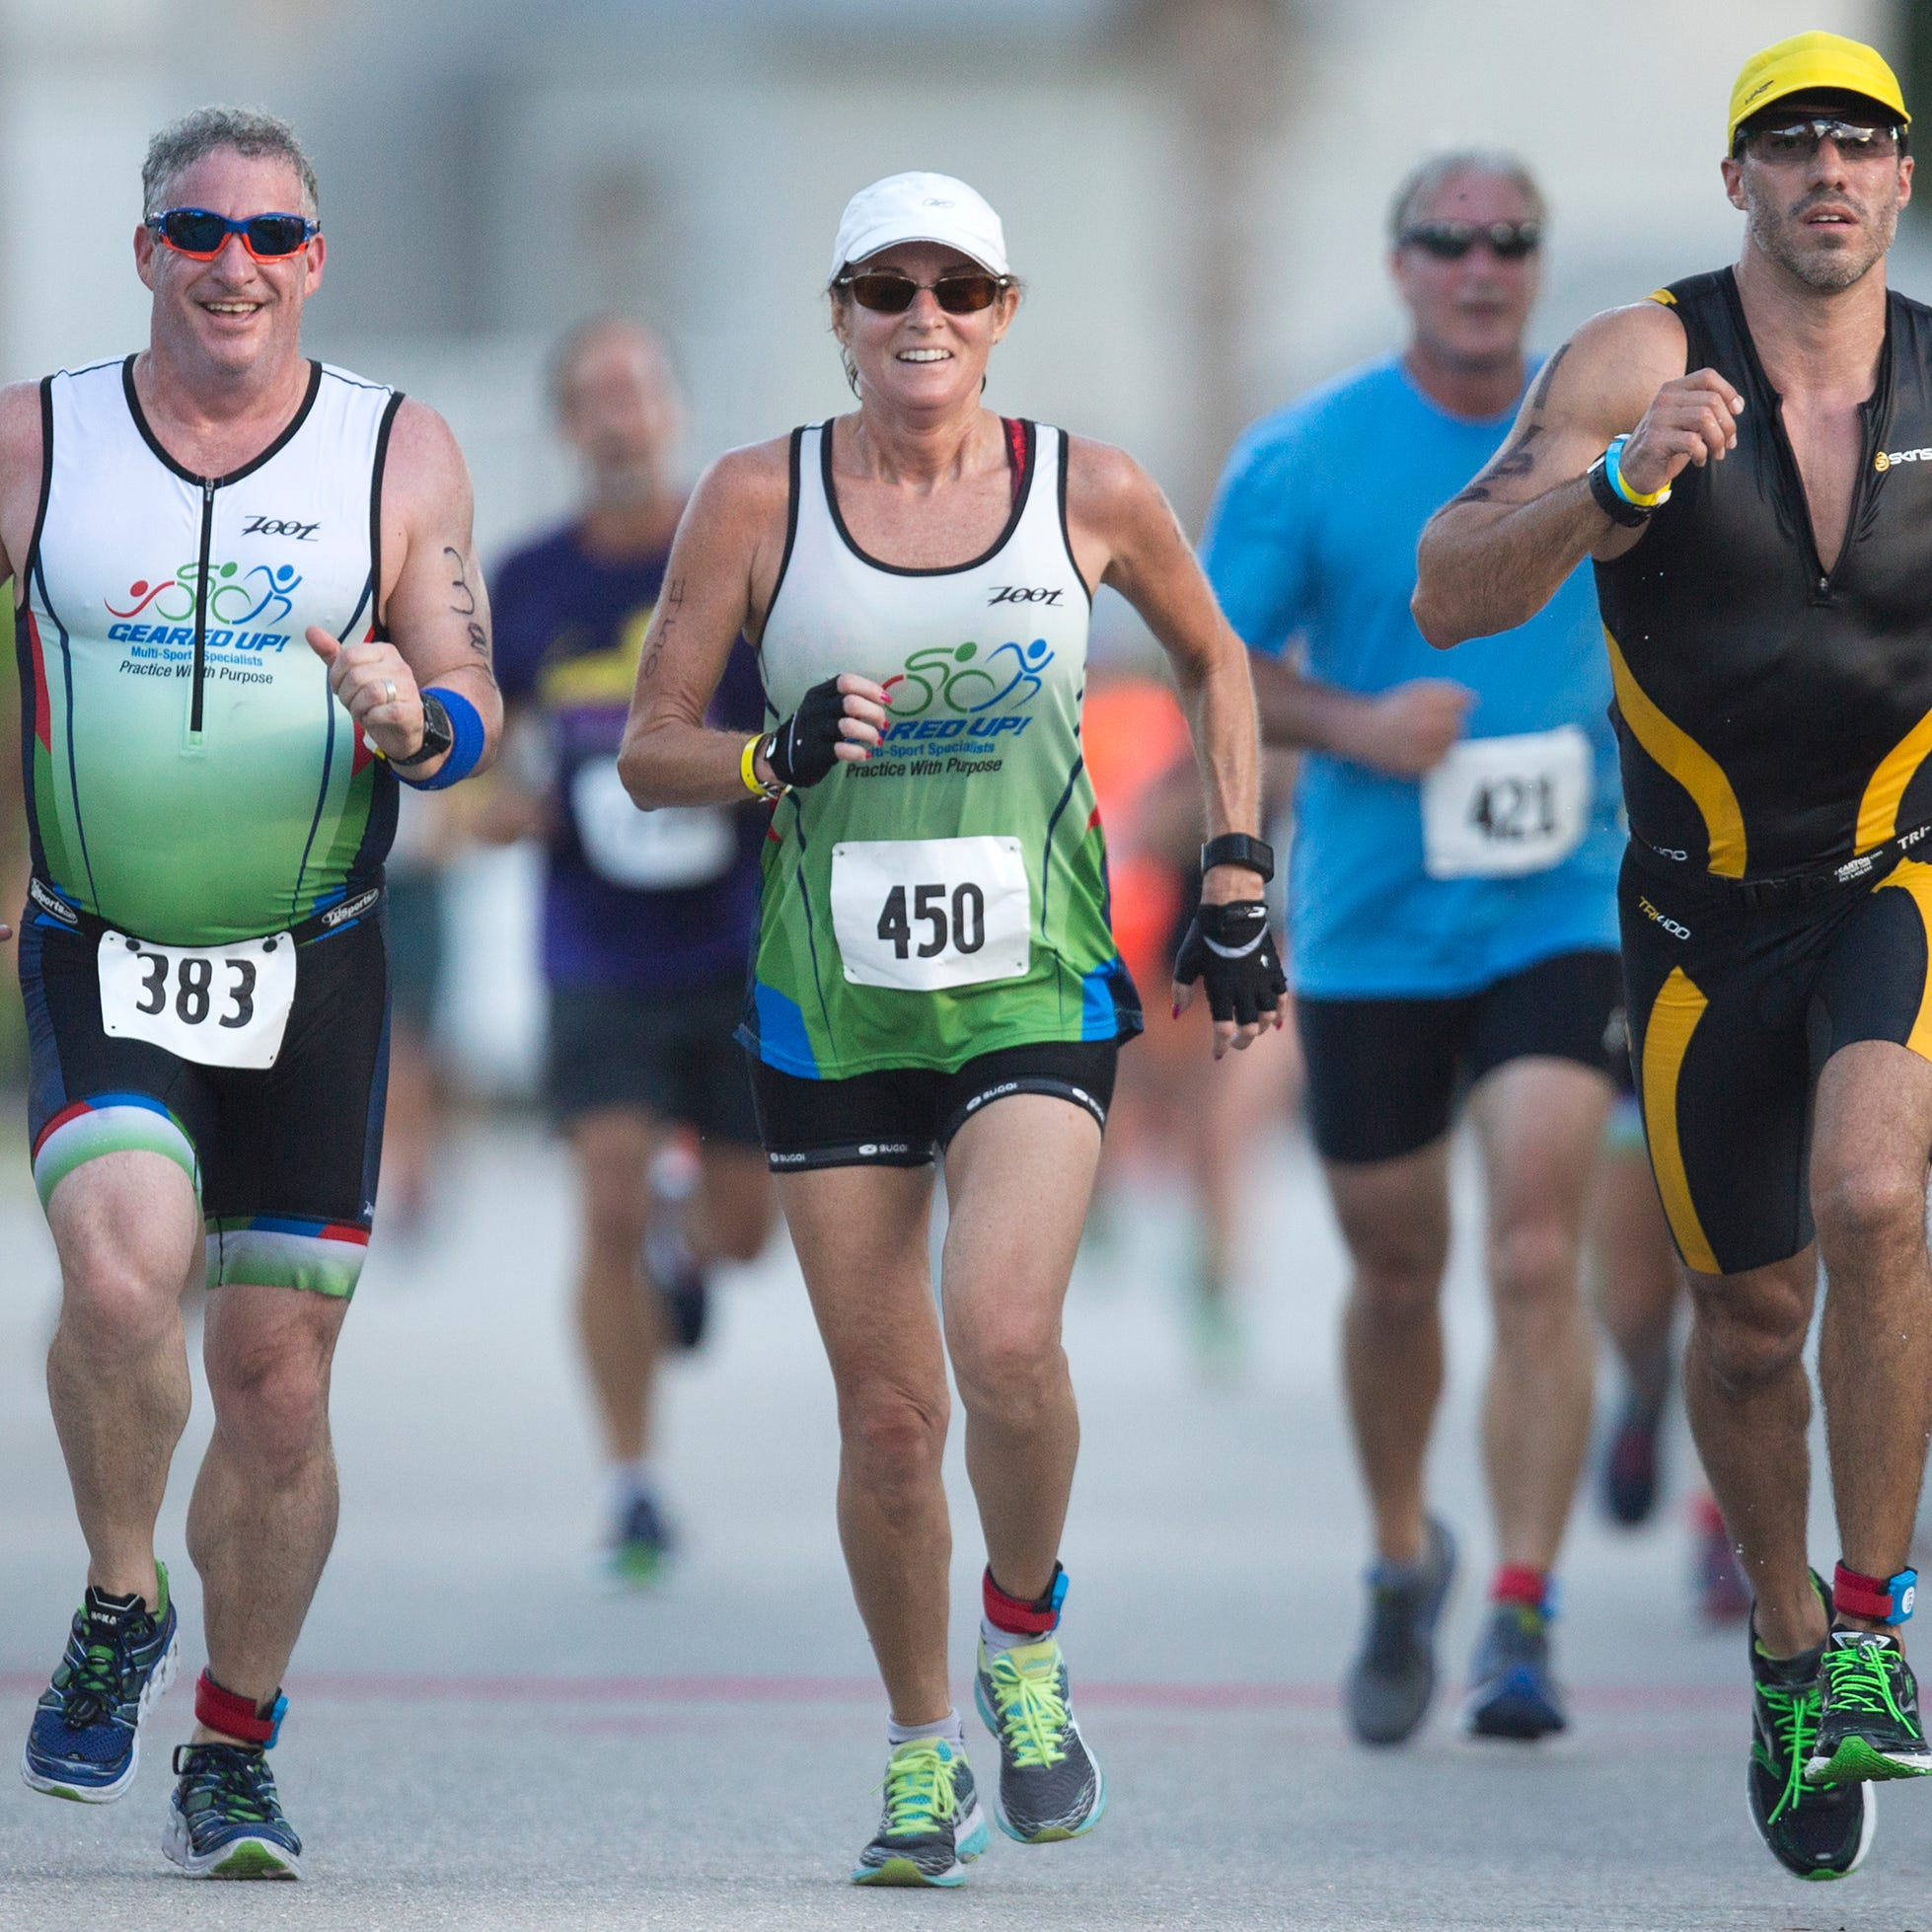 Cape Coral middle-schooler tops among women in Captiva race